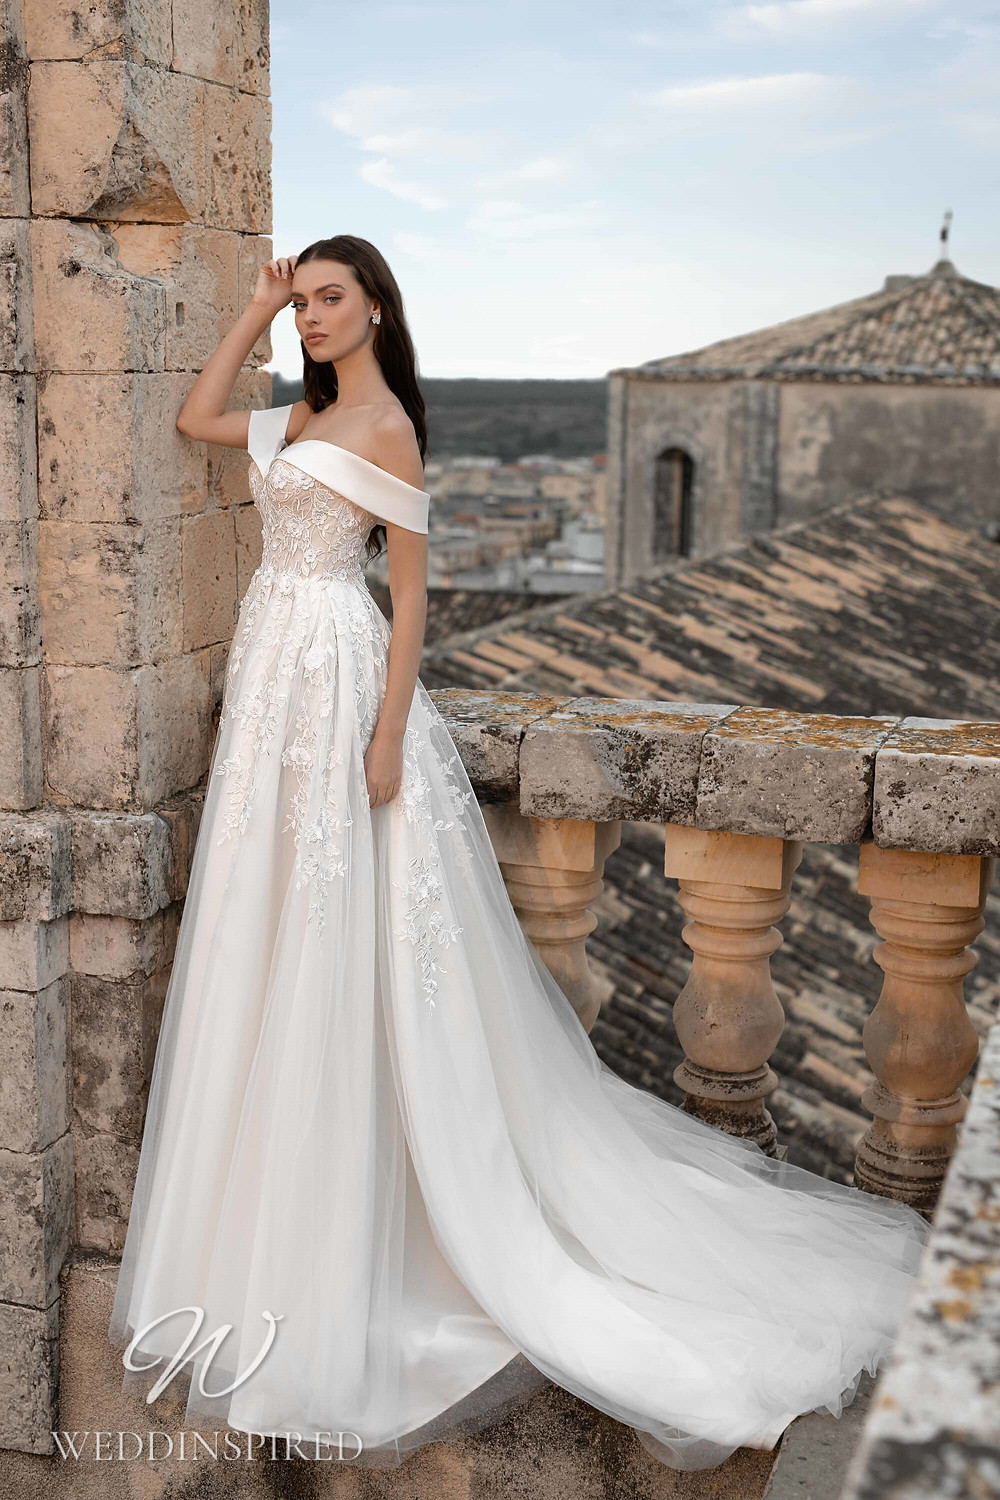 A Lussano 2021 off the shoulder lace and tulle A-line wedding dress